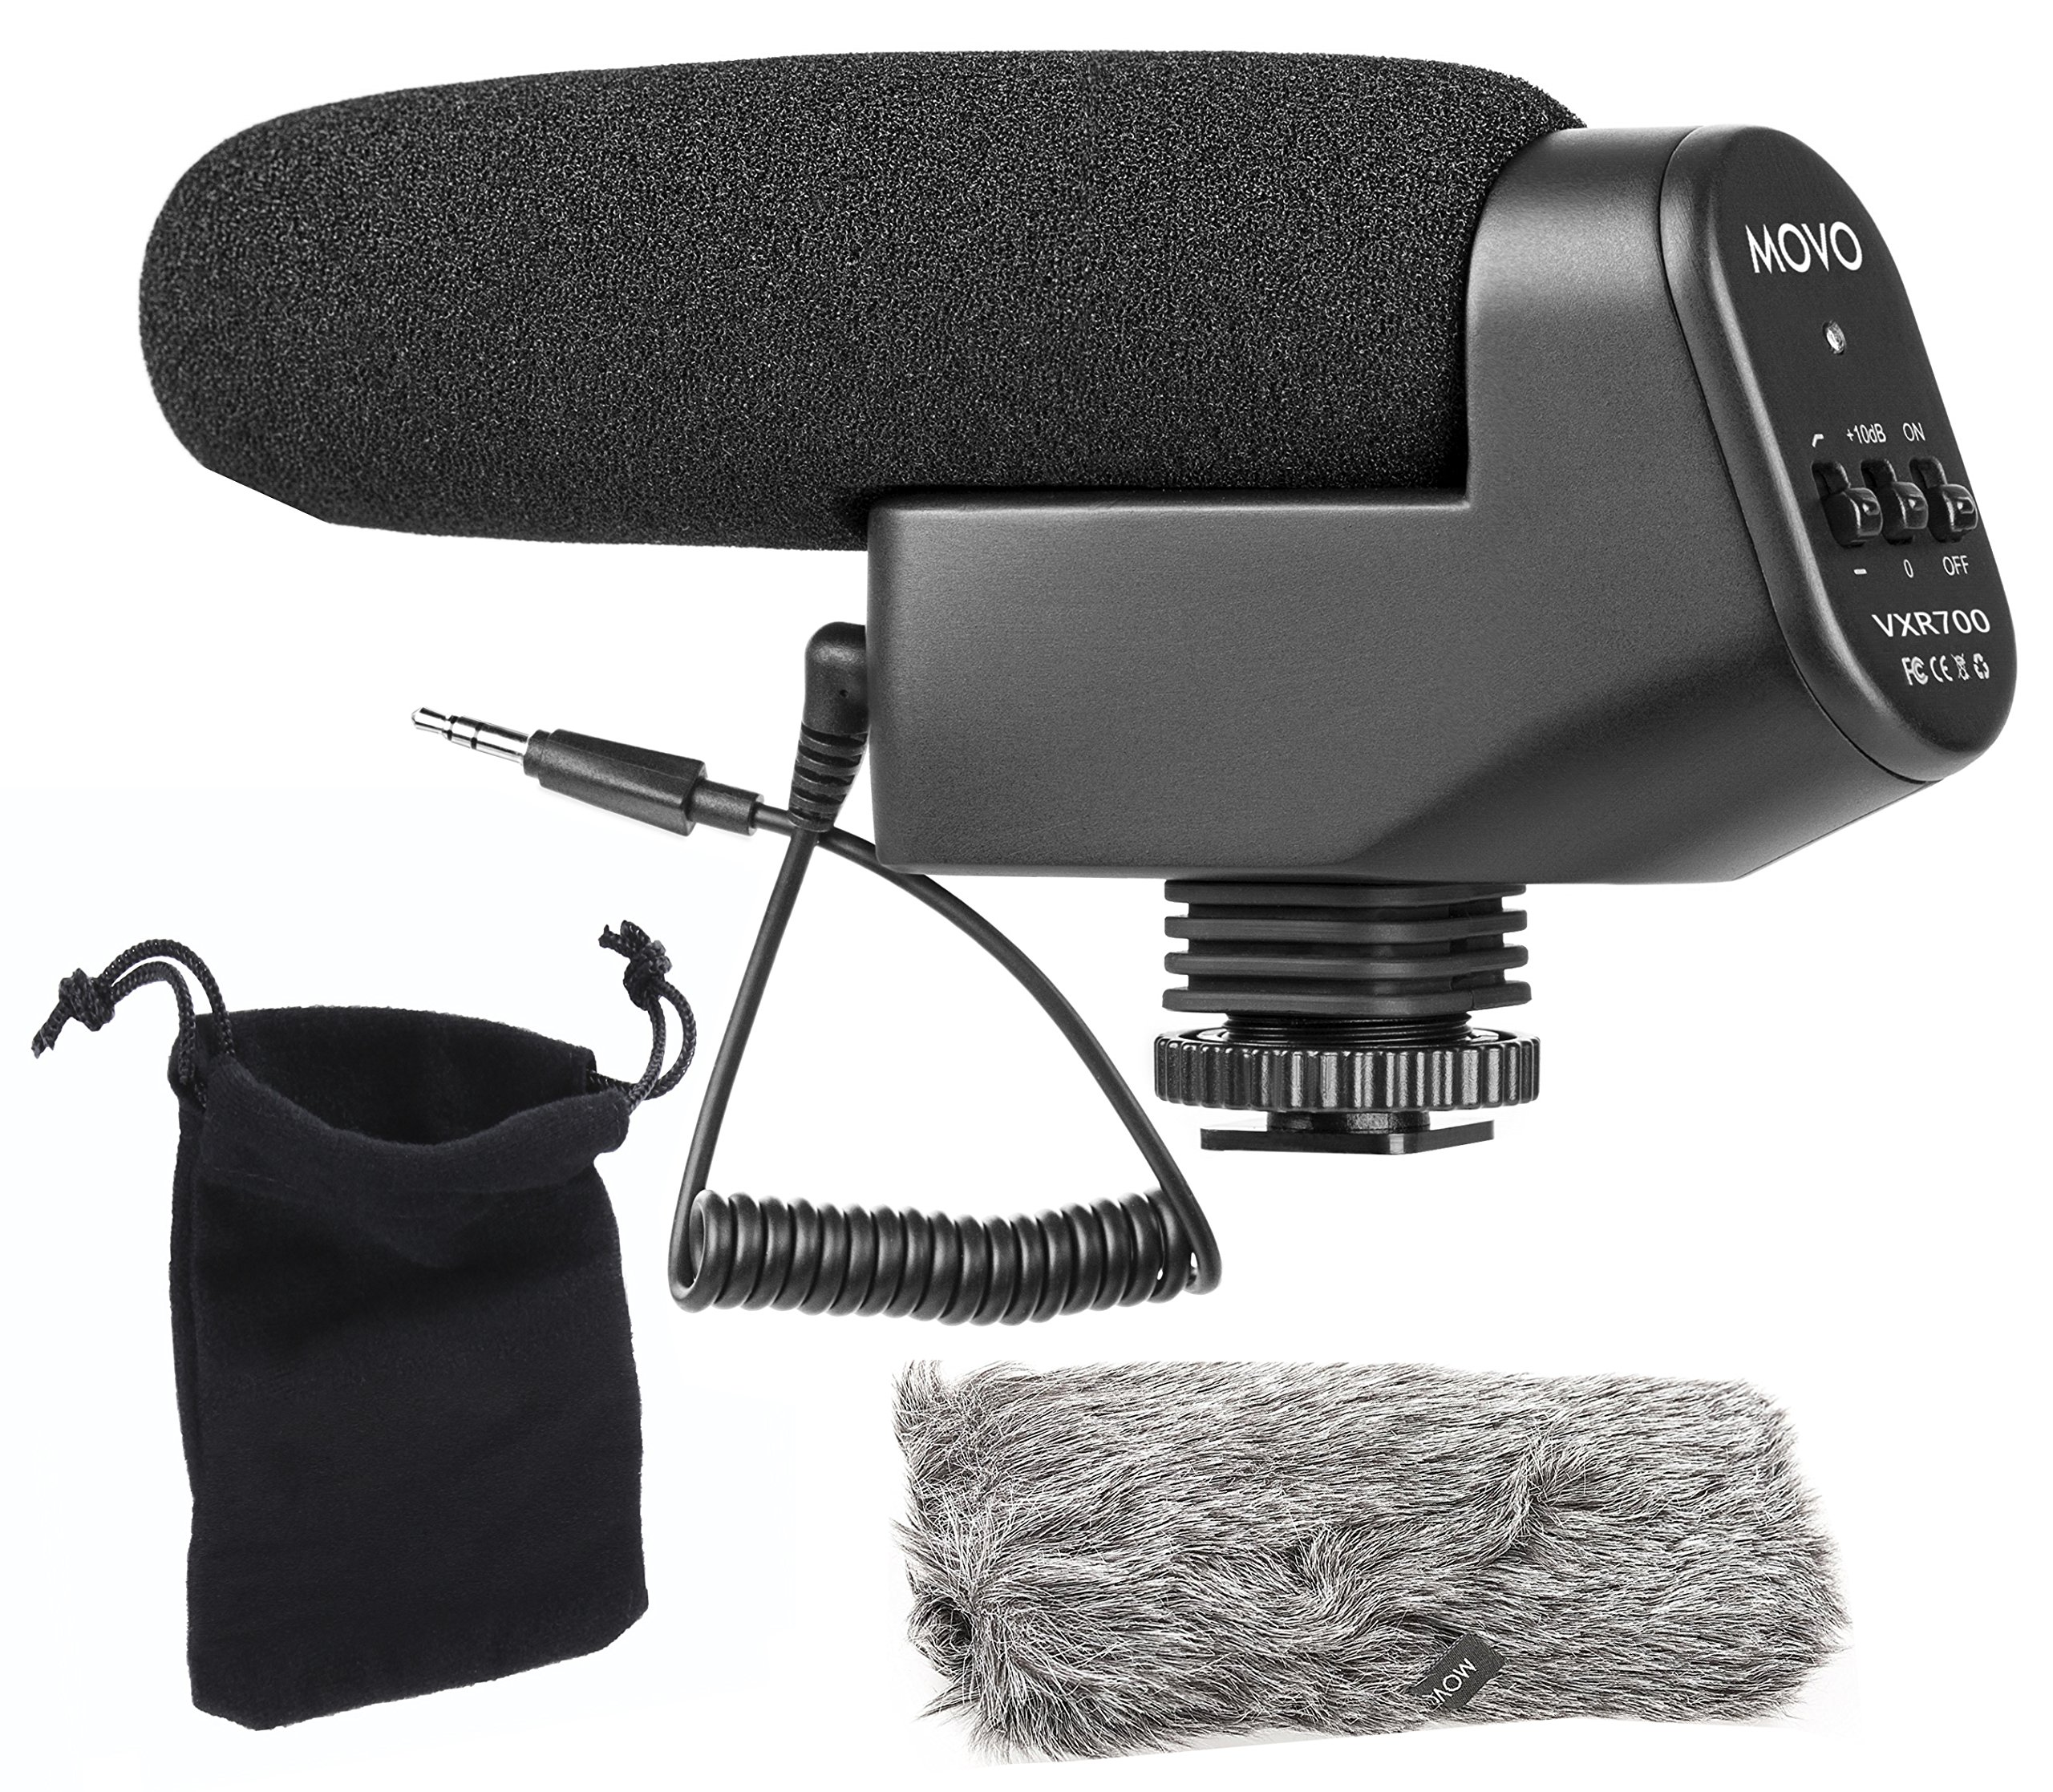 Movo VXR700 Shotgun Condenser Video Microphone with Integrated Shockmount, 10dB Gain Switch, Low Cut Filter, Foam & Deadcat Windscreens & Carry Case - For DSLR Cameras & Camcorders